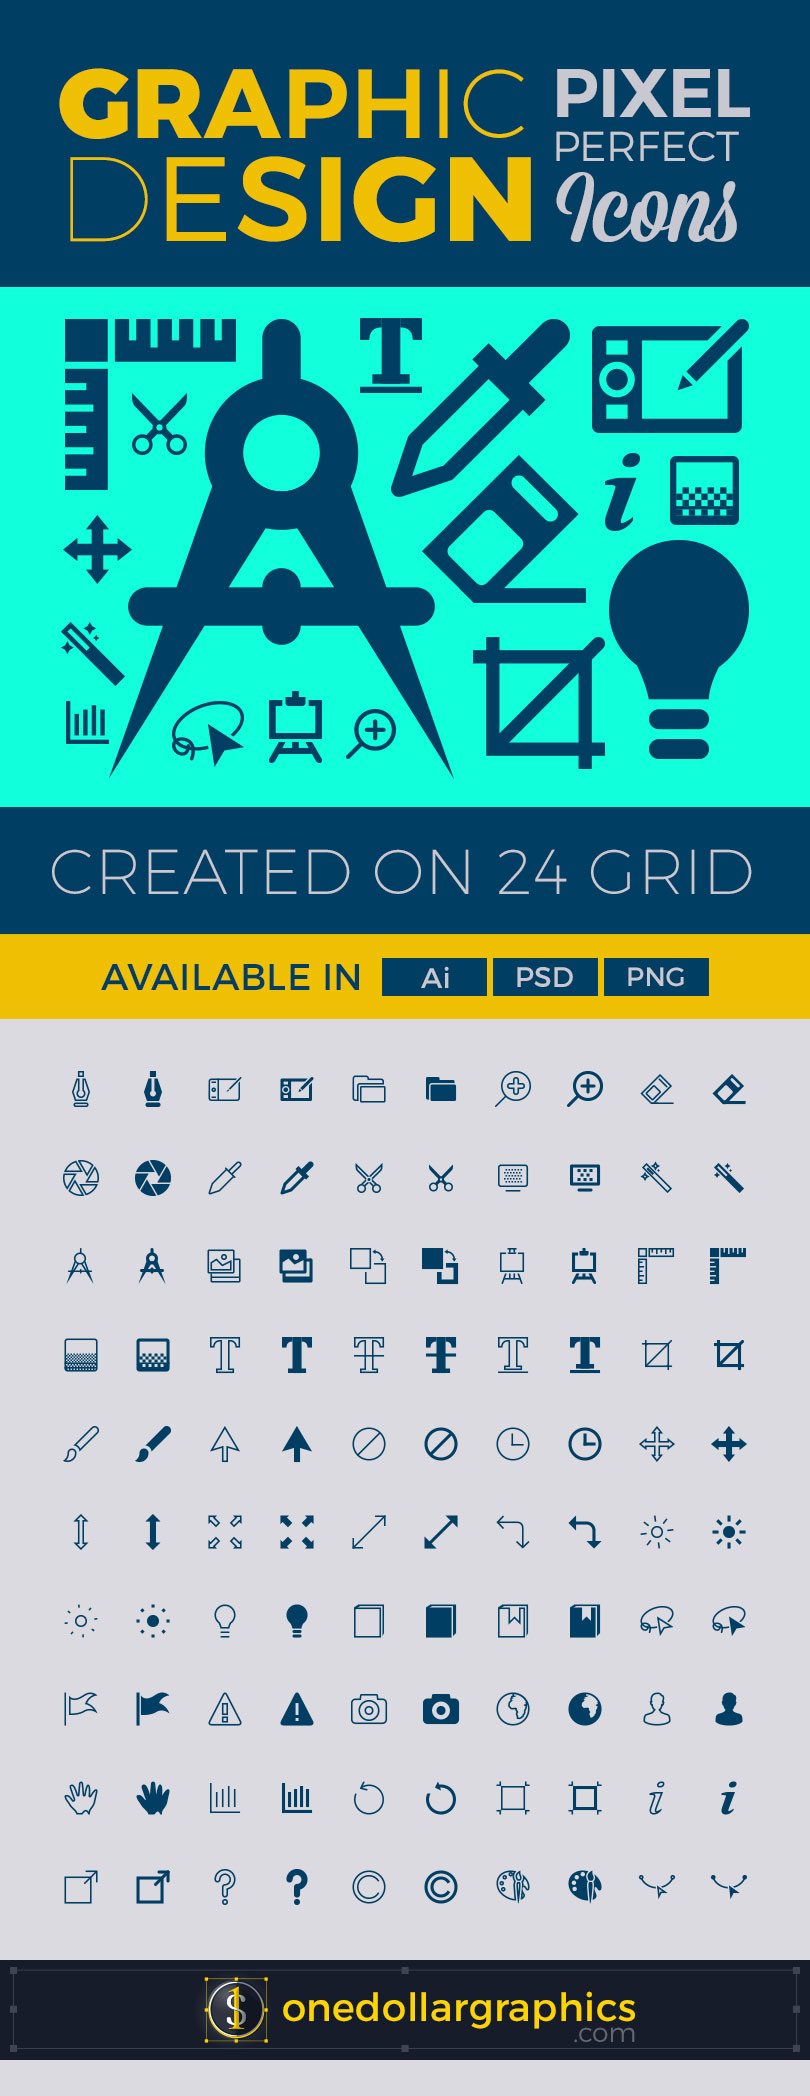 graphic-design-pixel-perfect-icons-2